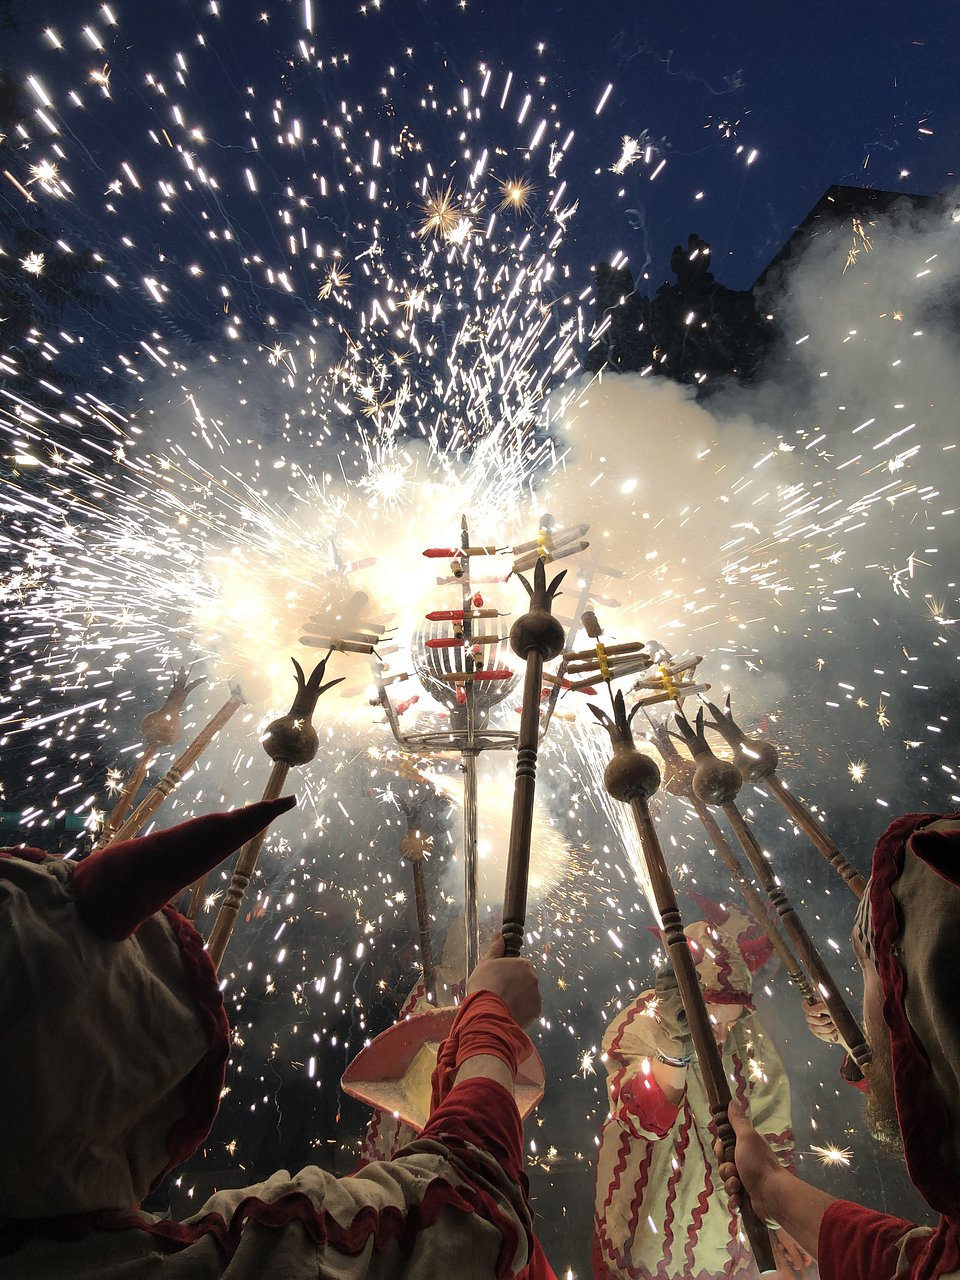 Correfocs during traditional Catalan festival, where groups dressed as devils light firework in the crowd (Albert Castañe/Agora)